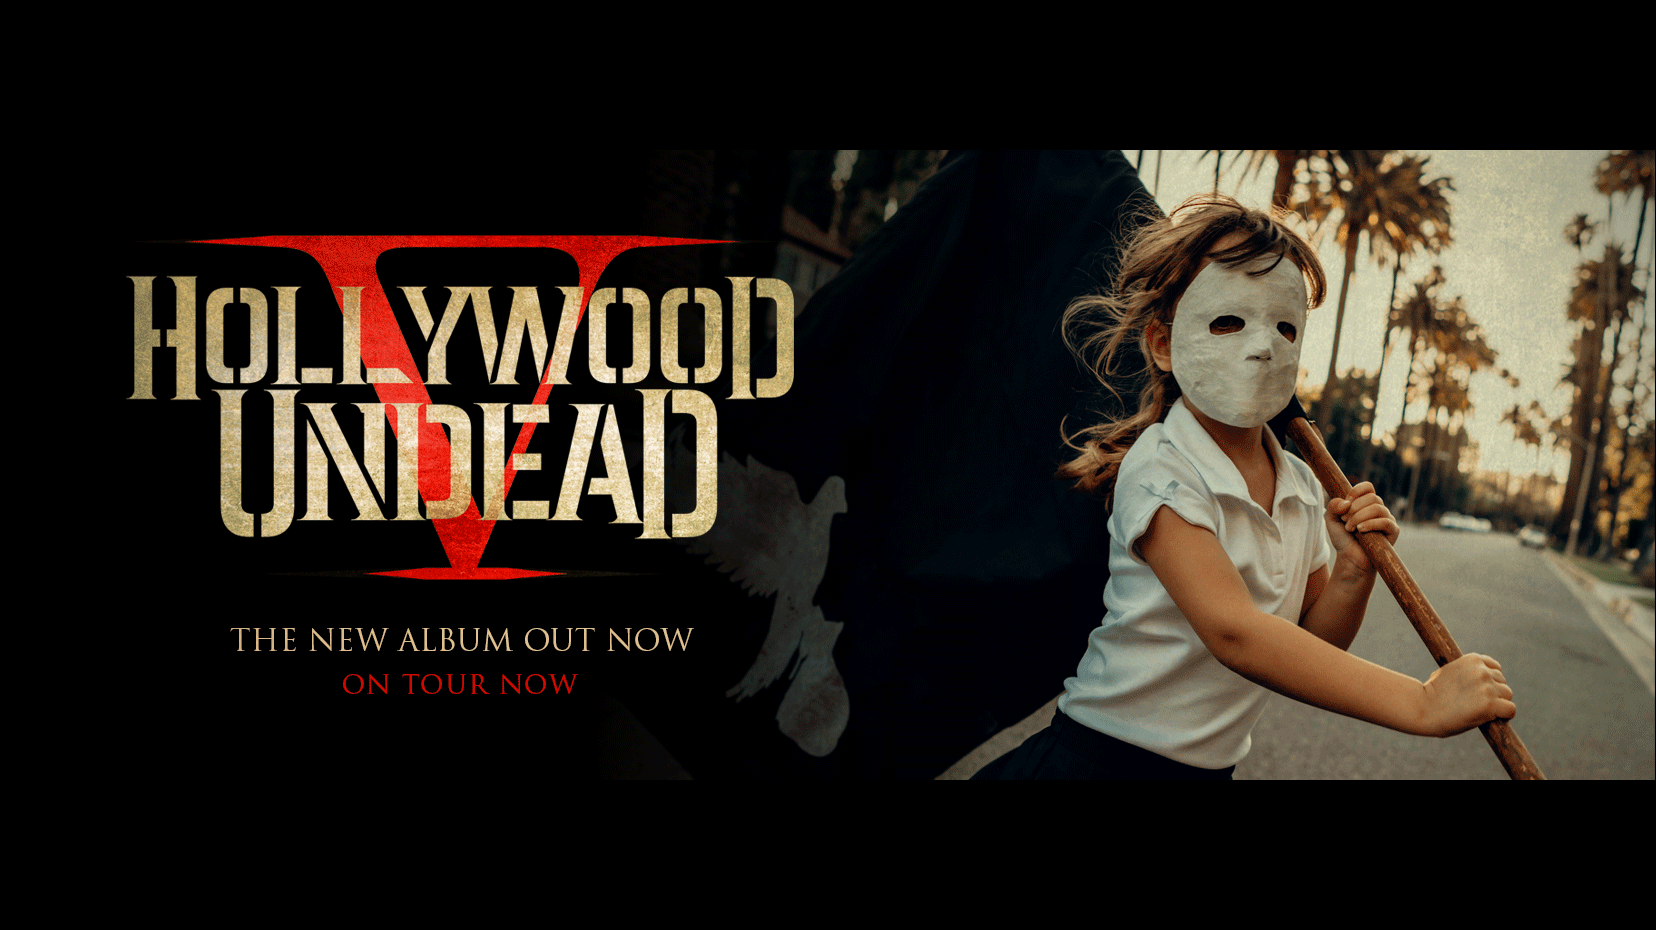 Hollywood Undead - Tour 2018